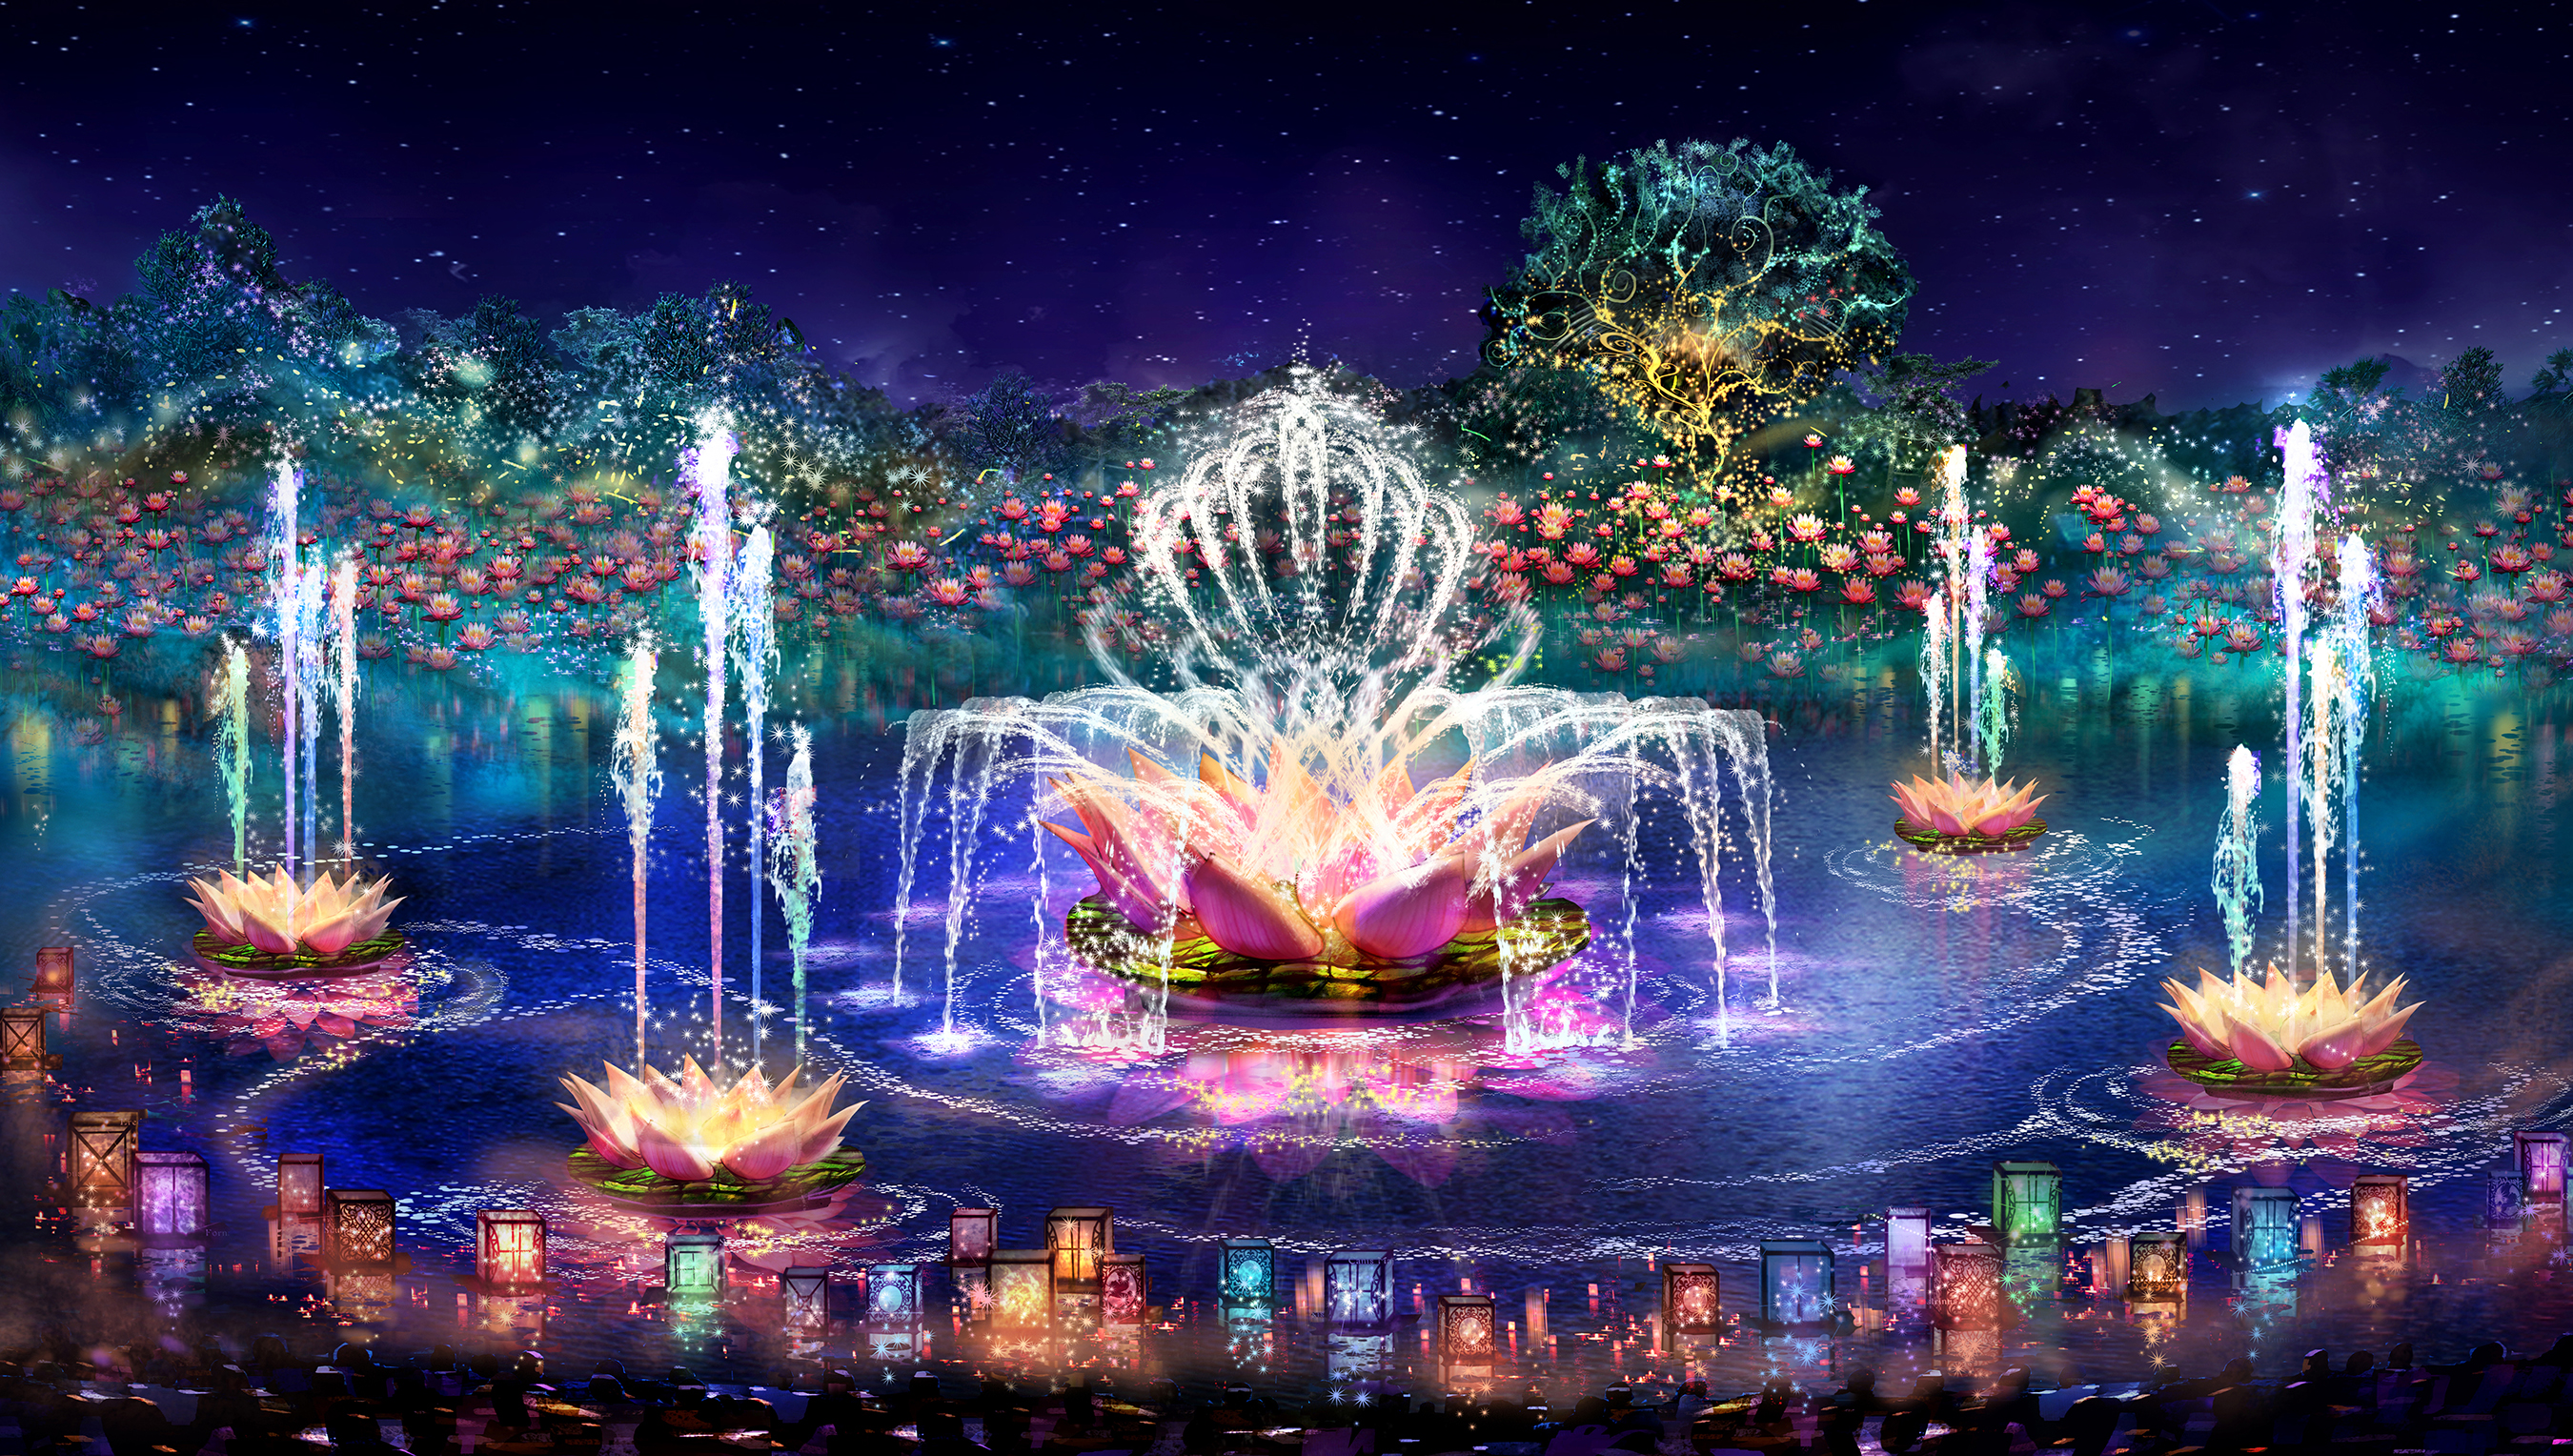 Rivers Of Light Concept Art Photo Of - Rivers of